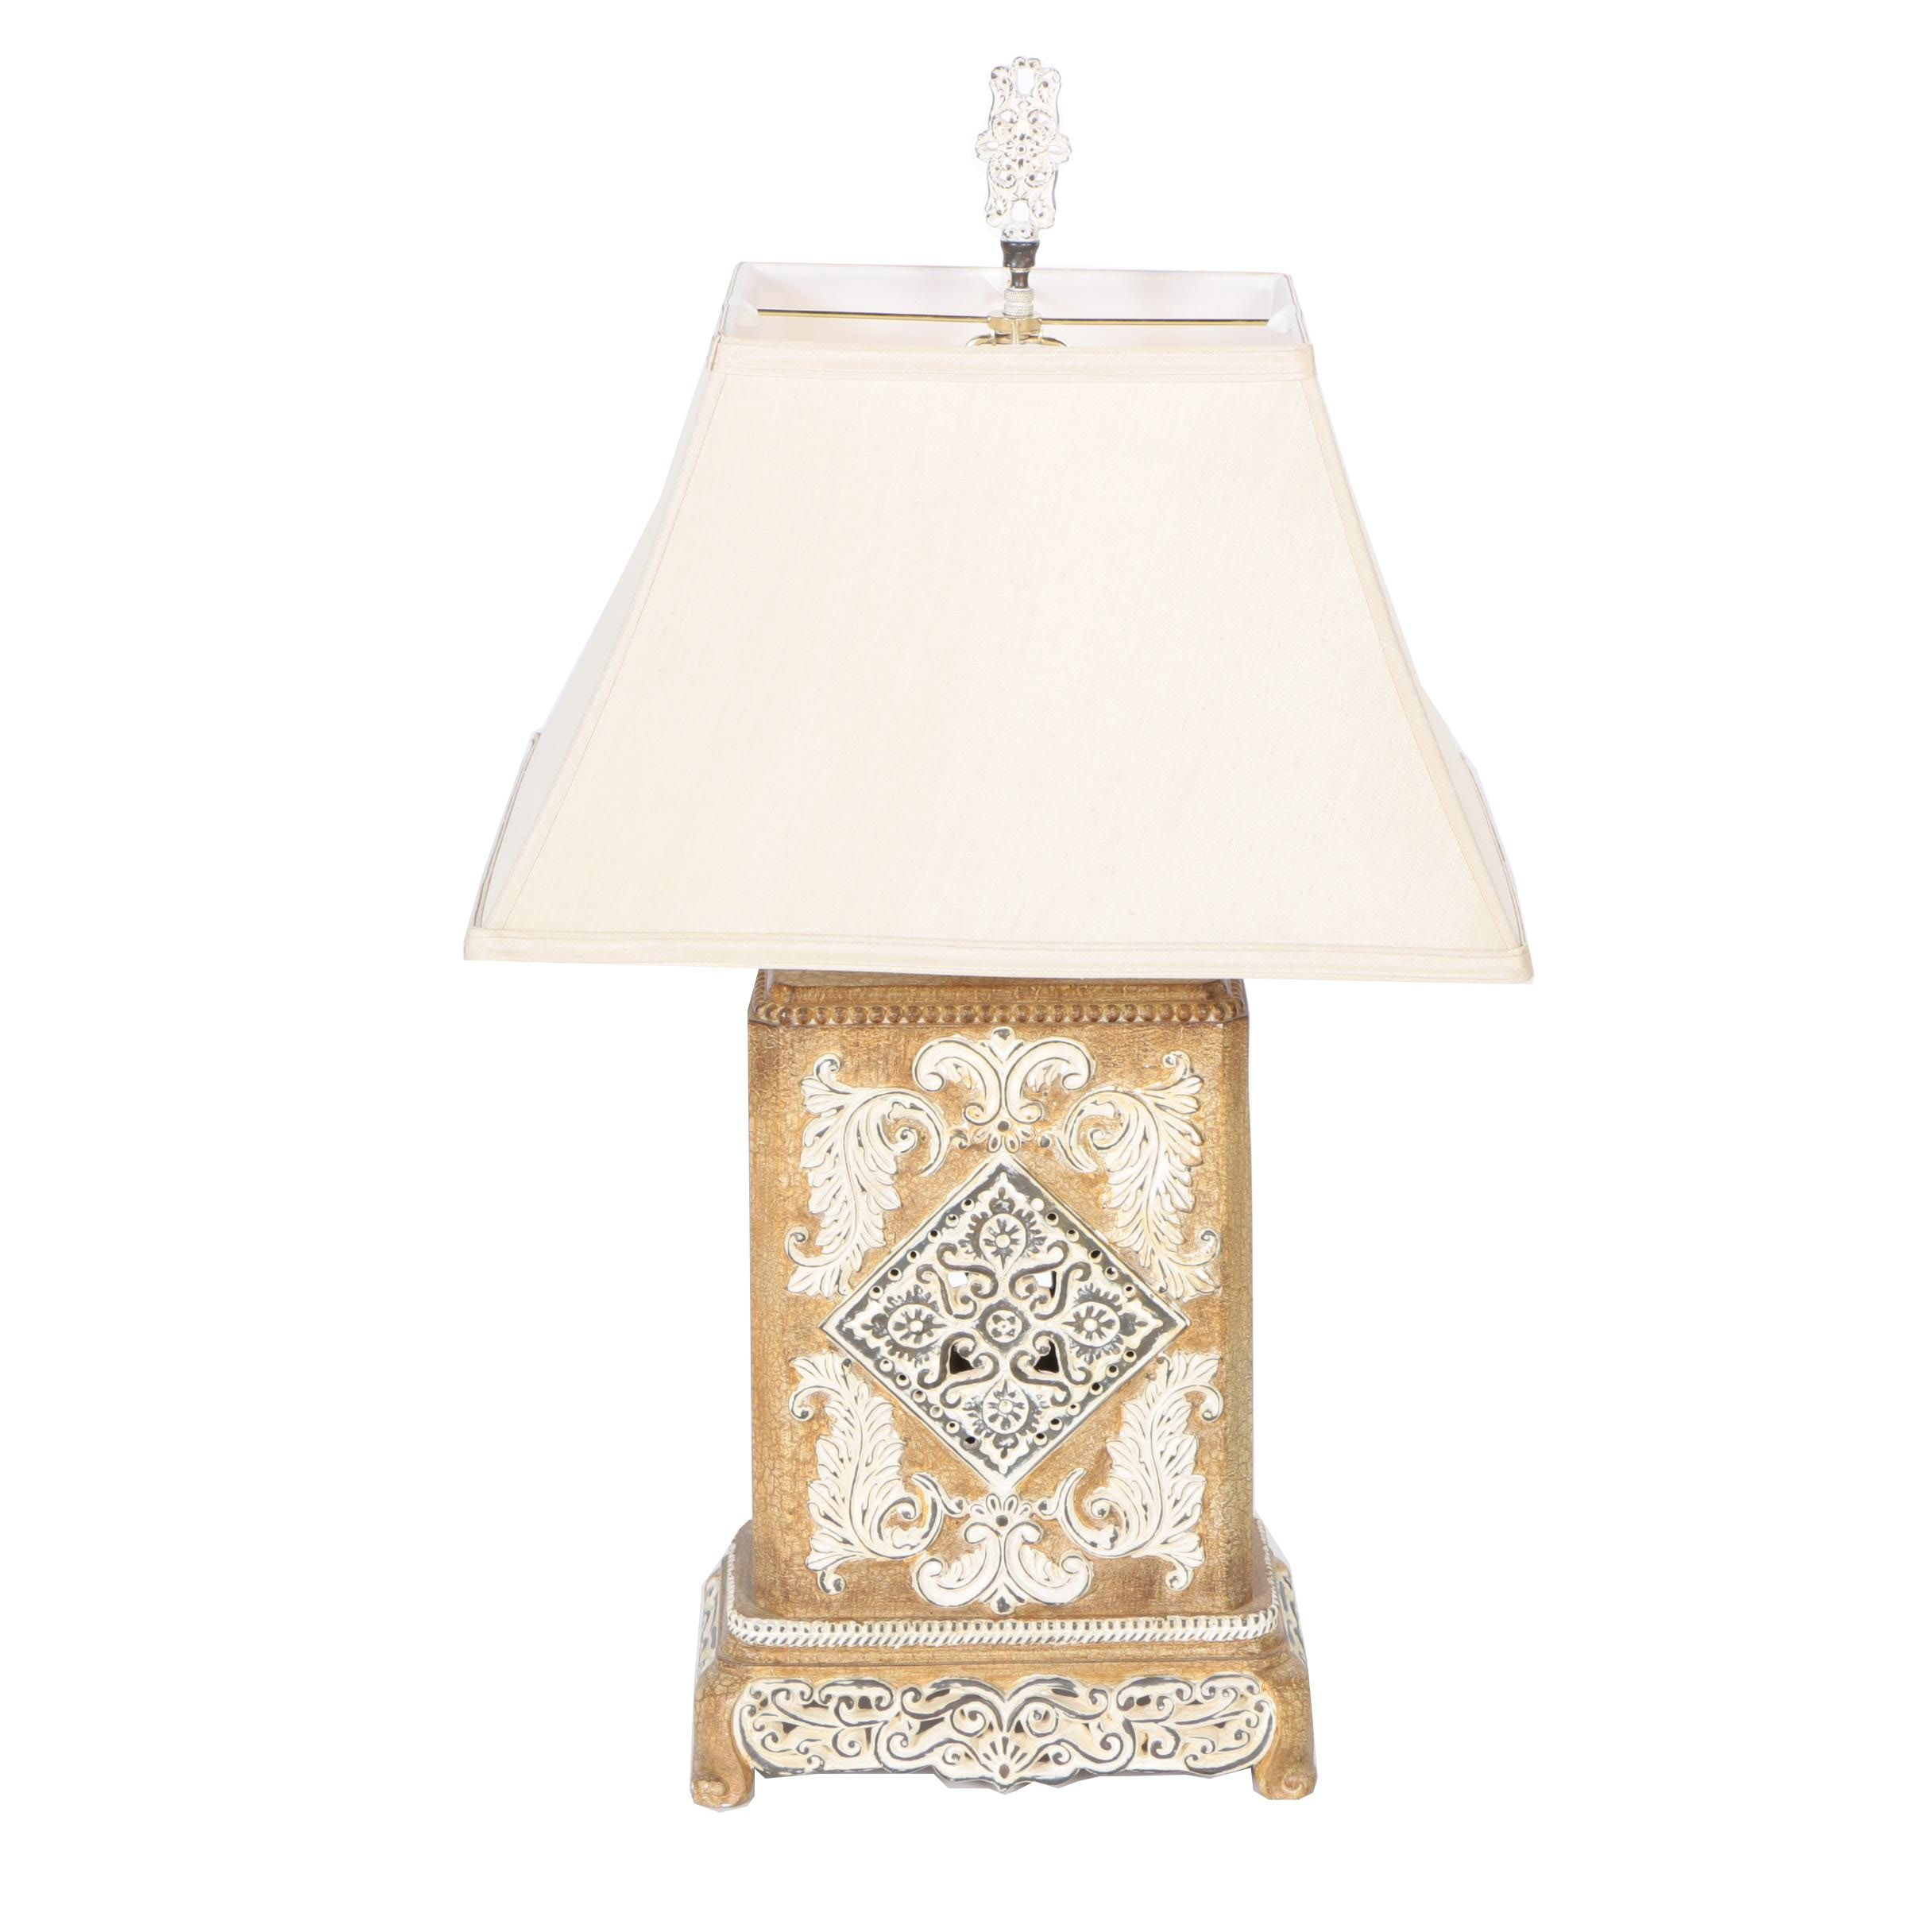 Decorative Table Lamp with a Square Body